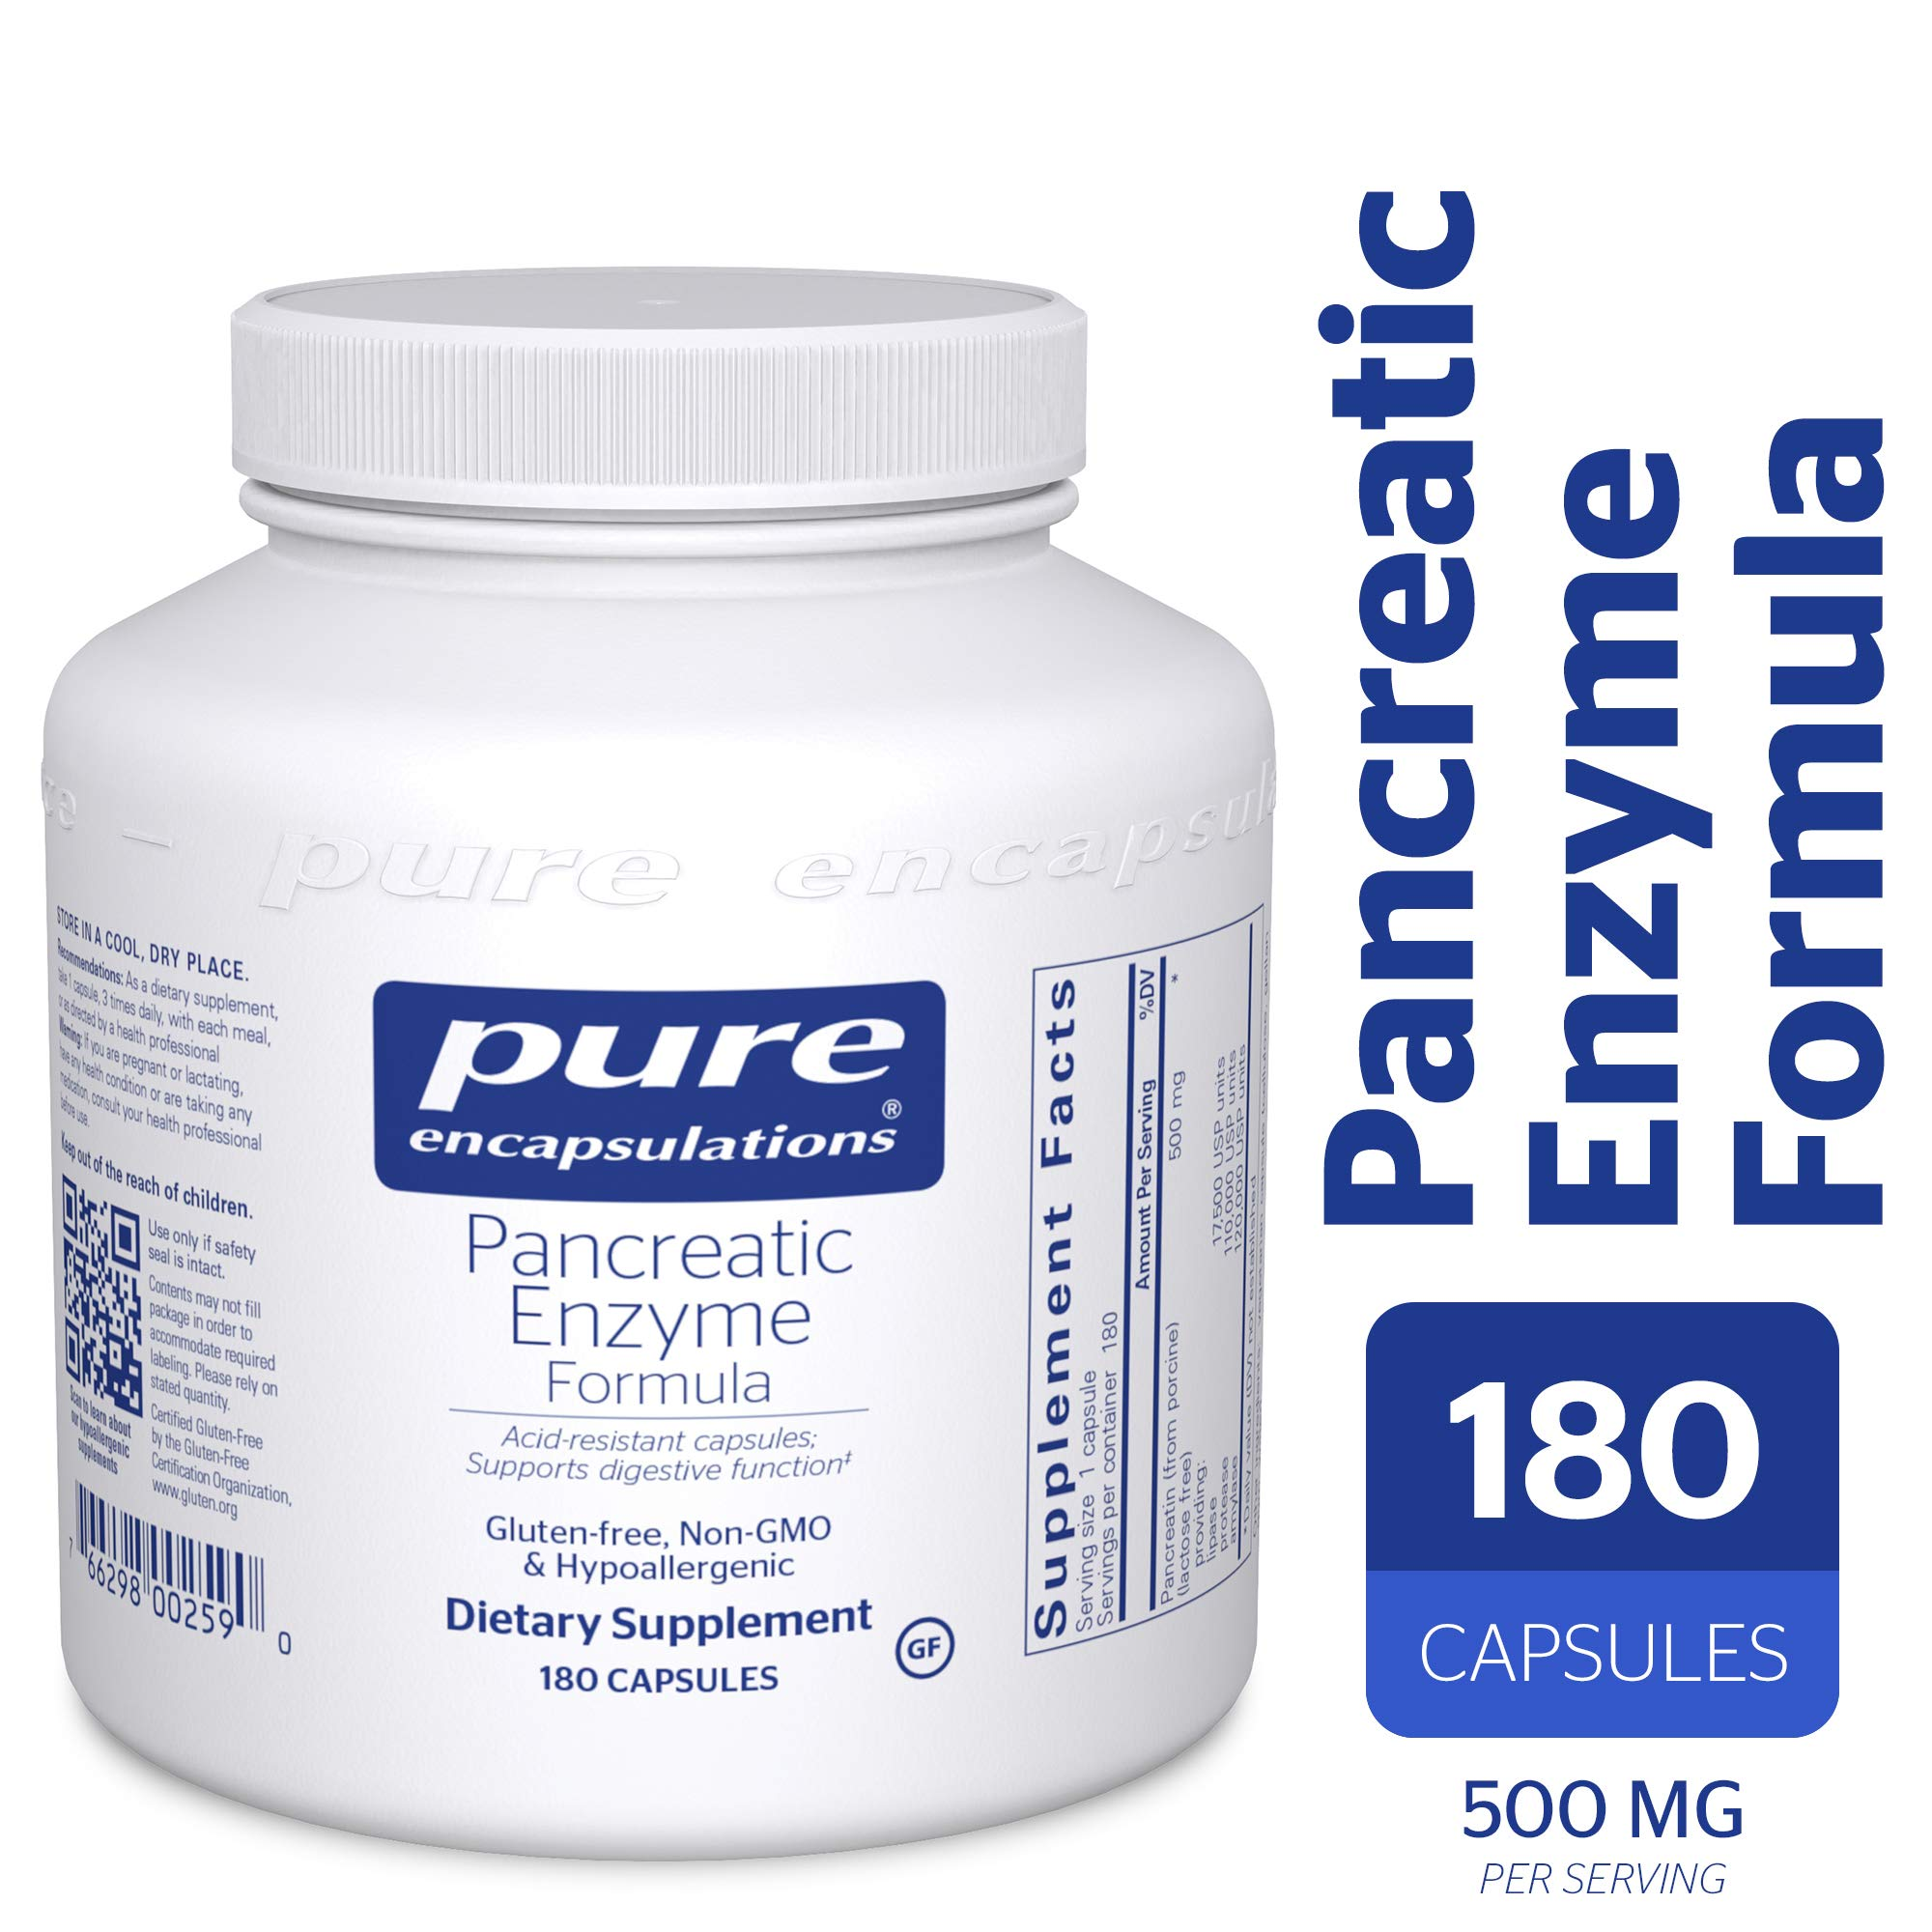 Pure Encapsulations - Pancreatic Enzyme Formula - Hypoallergenic Supplement to Support Proper Digestive Function* - 180 Capsules by Pure Encapsulations (Image #1)